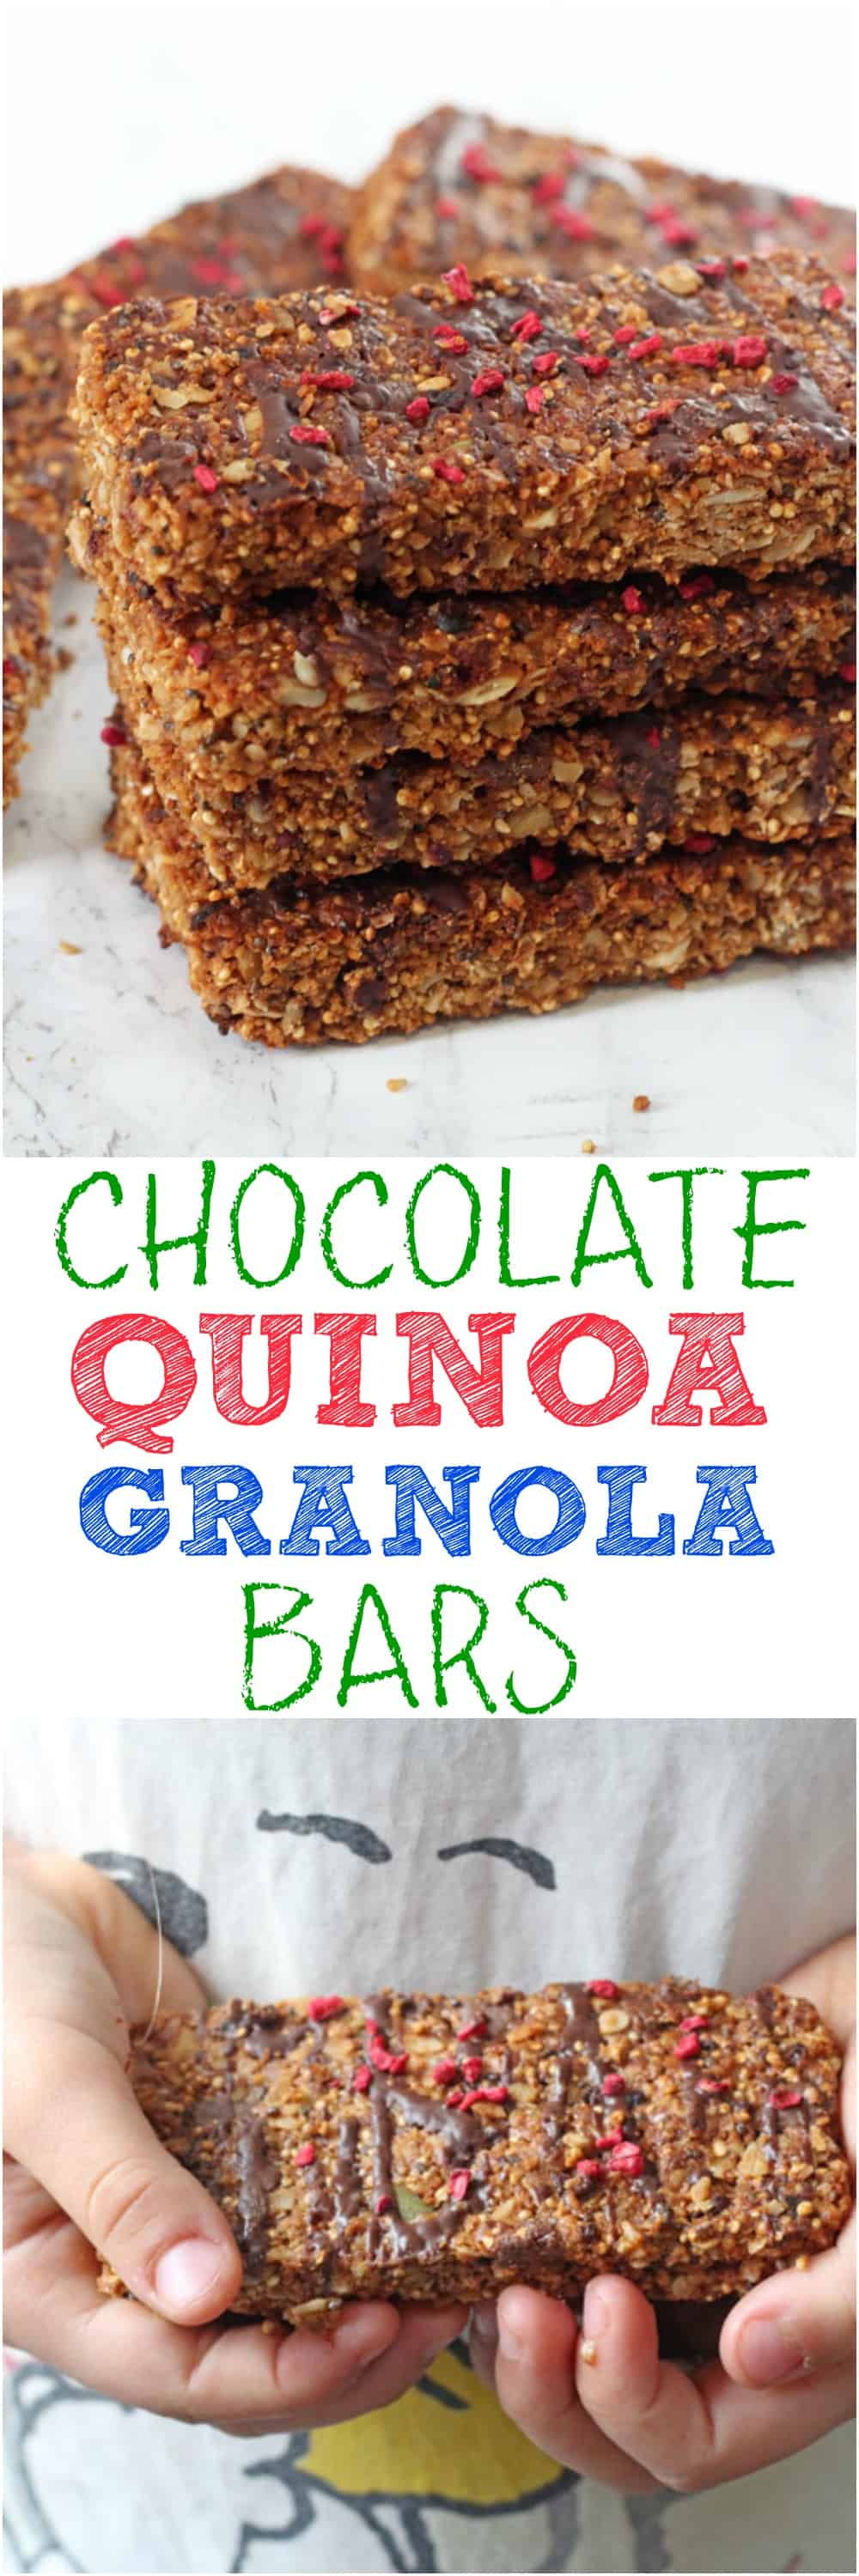 A super tasty and healthy Chocolate Granola Bar packed with oats, puffed quinoa, nuts and seeds. Great for snacks or for lunch boxes too!